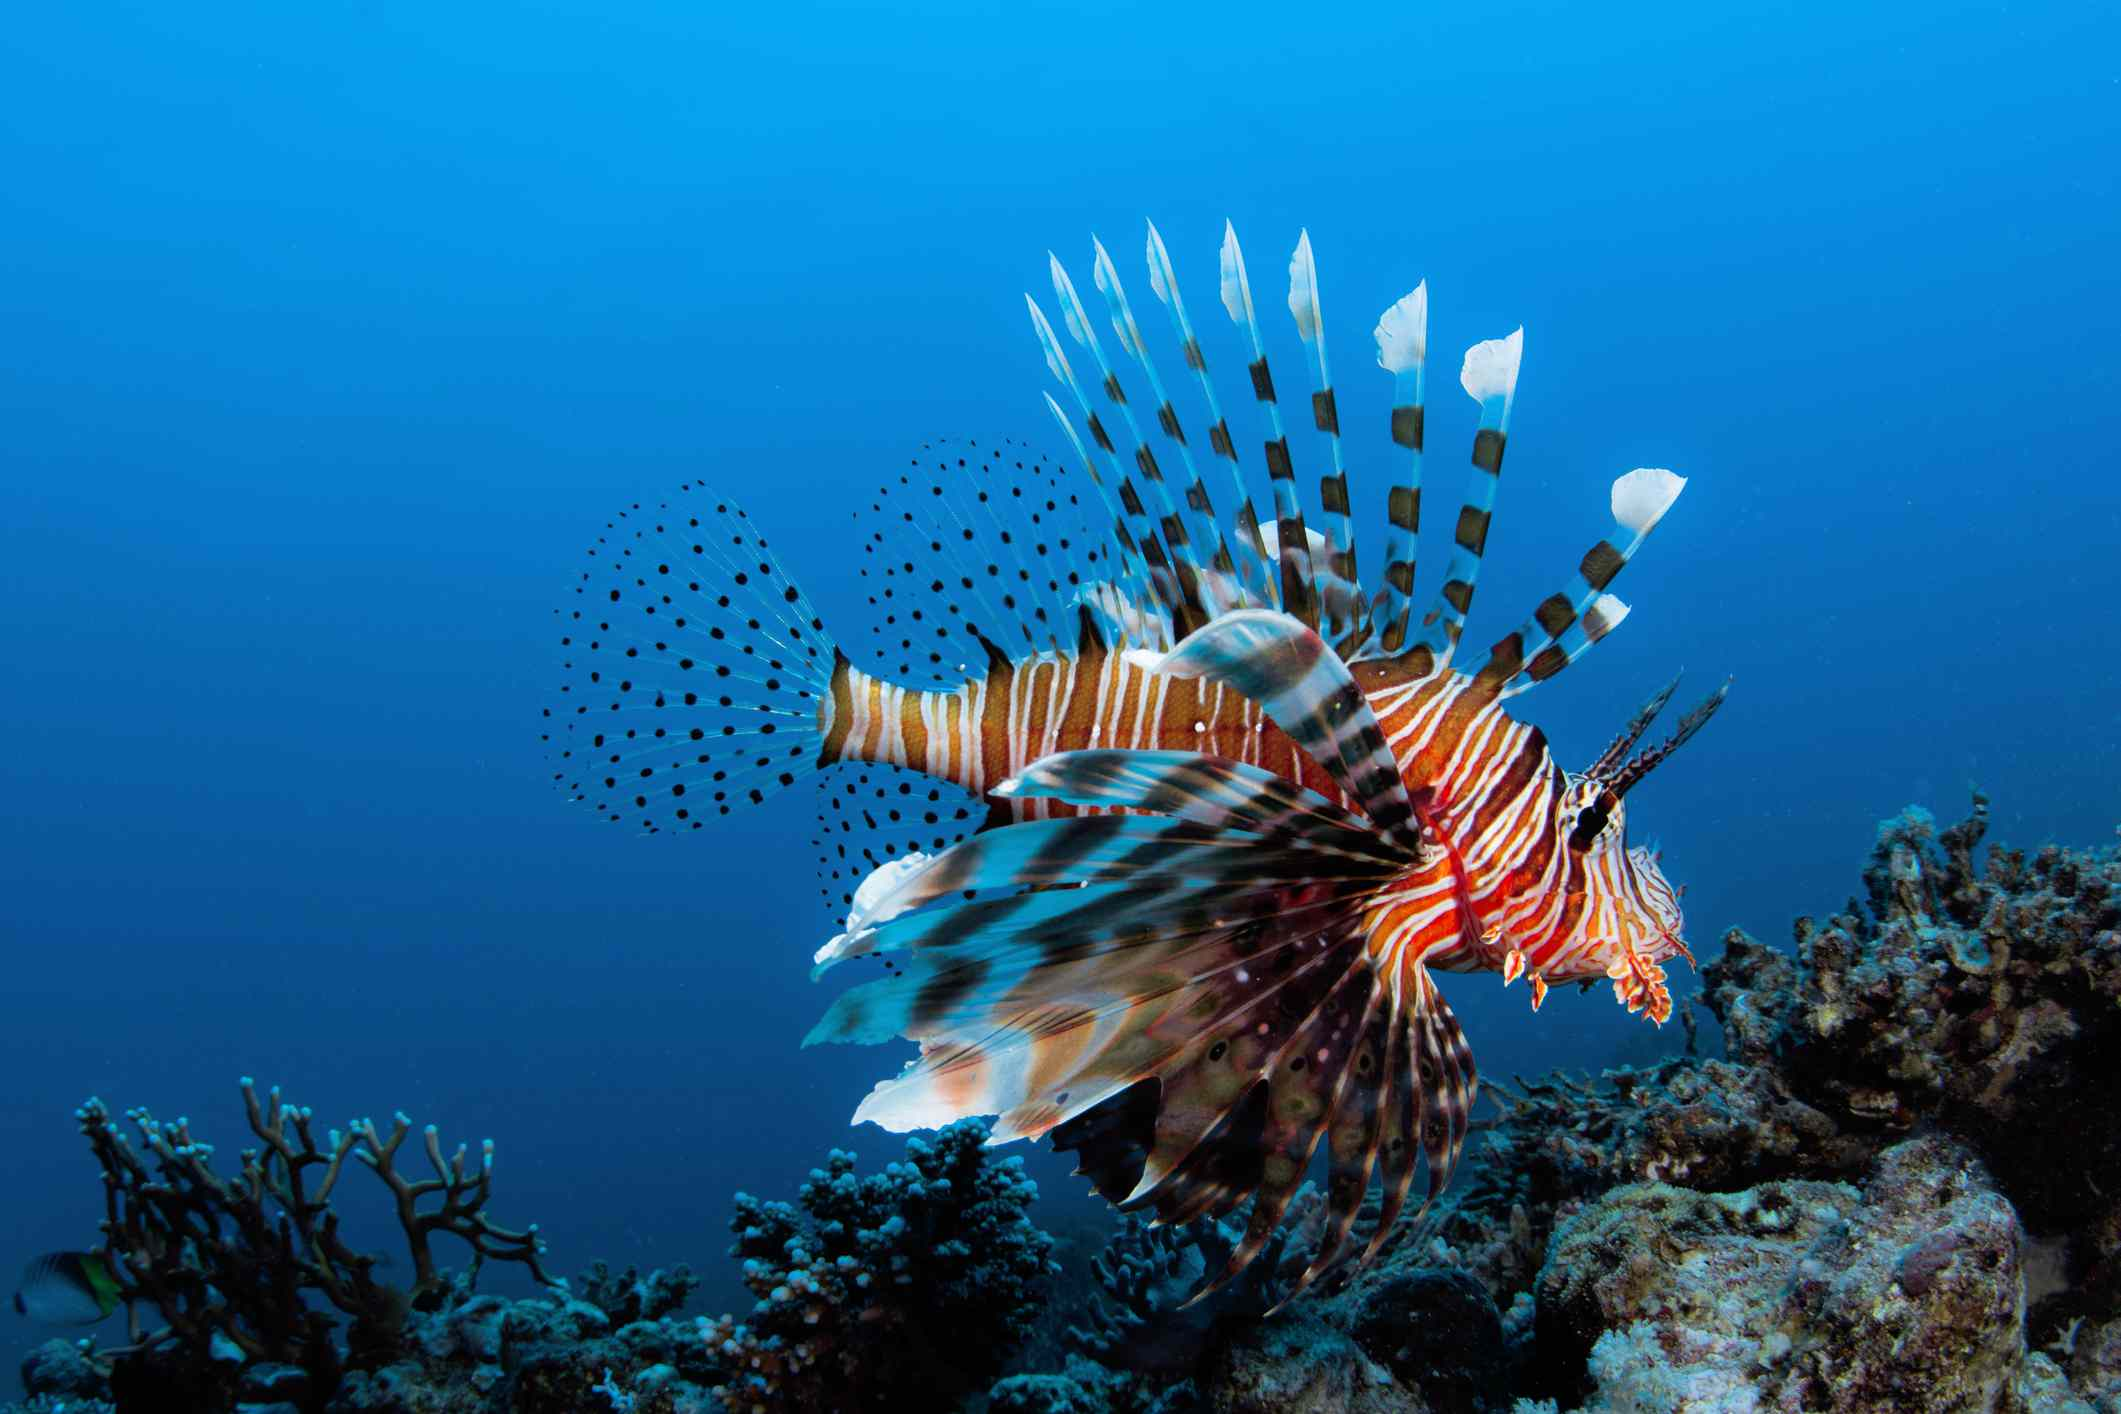 Red lionfish swimming along the reef in a bright blue ocean